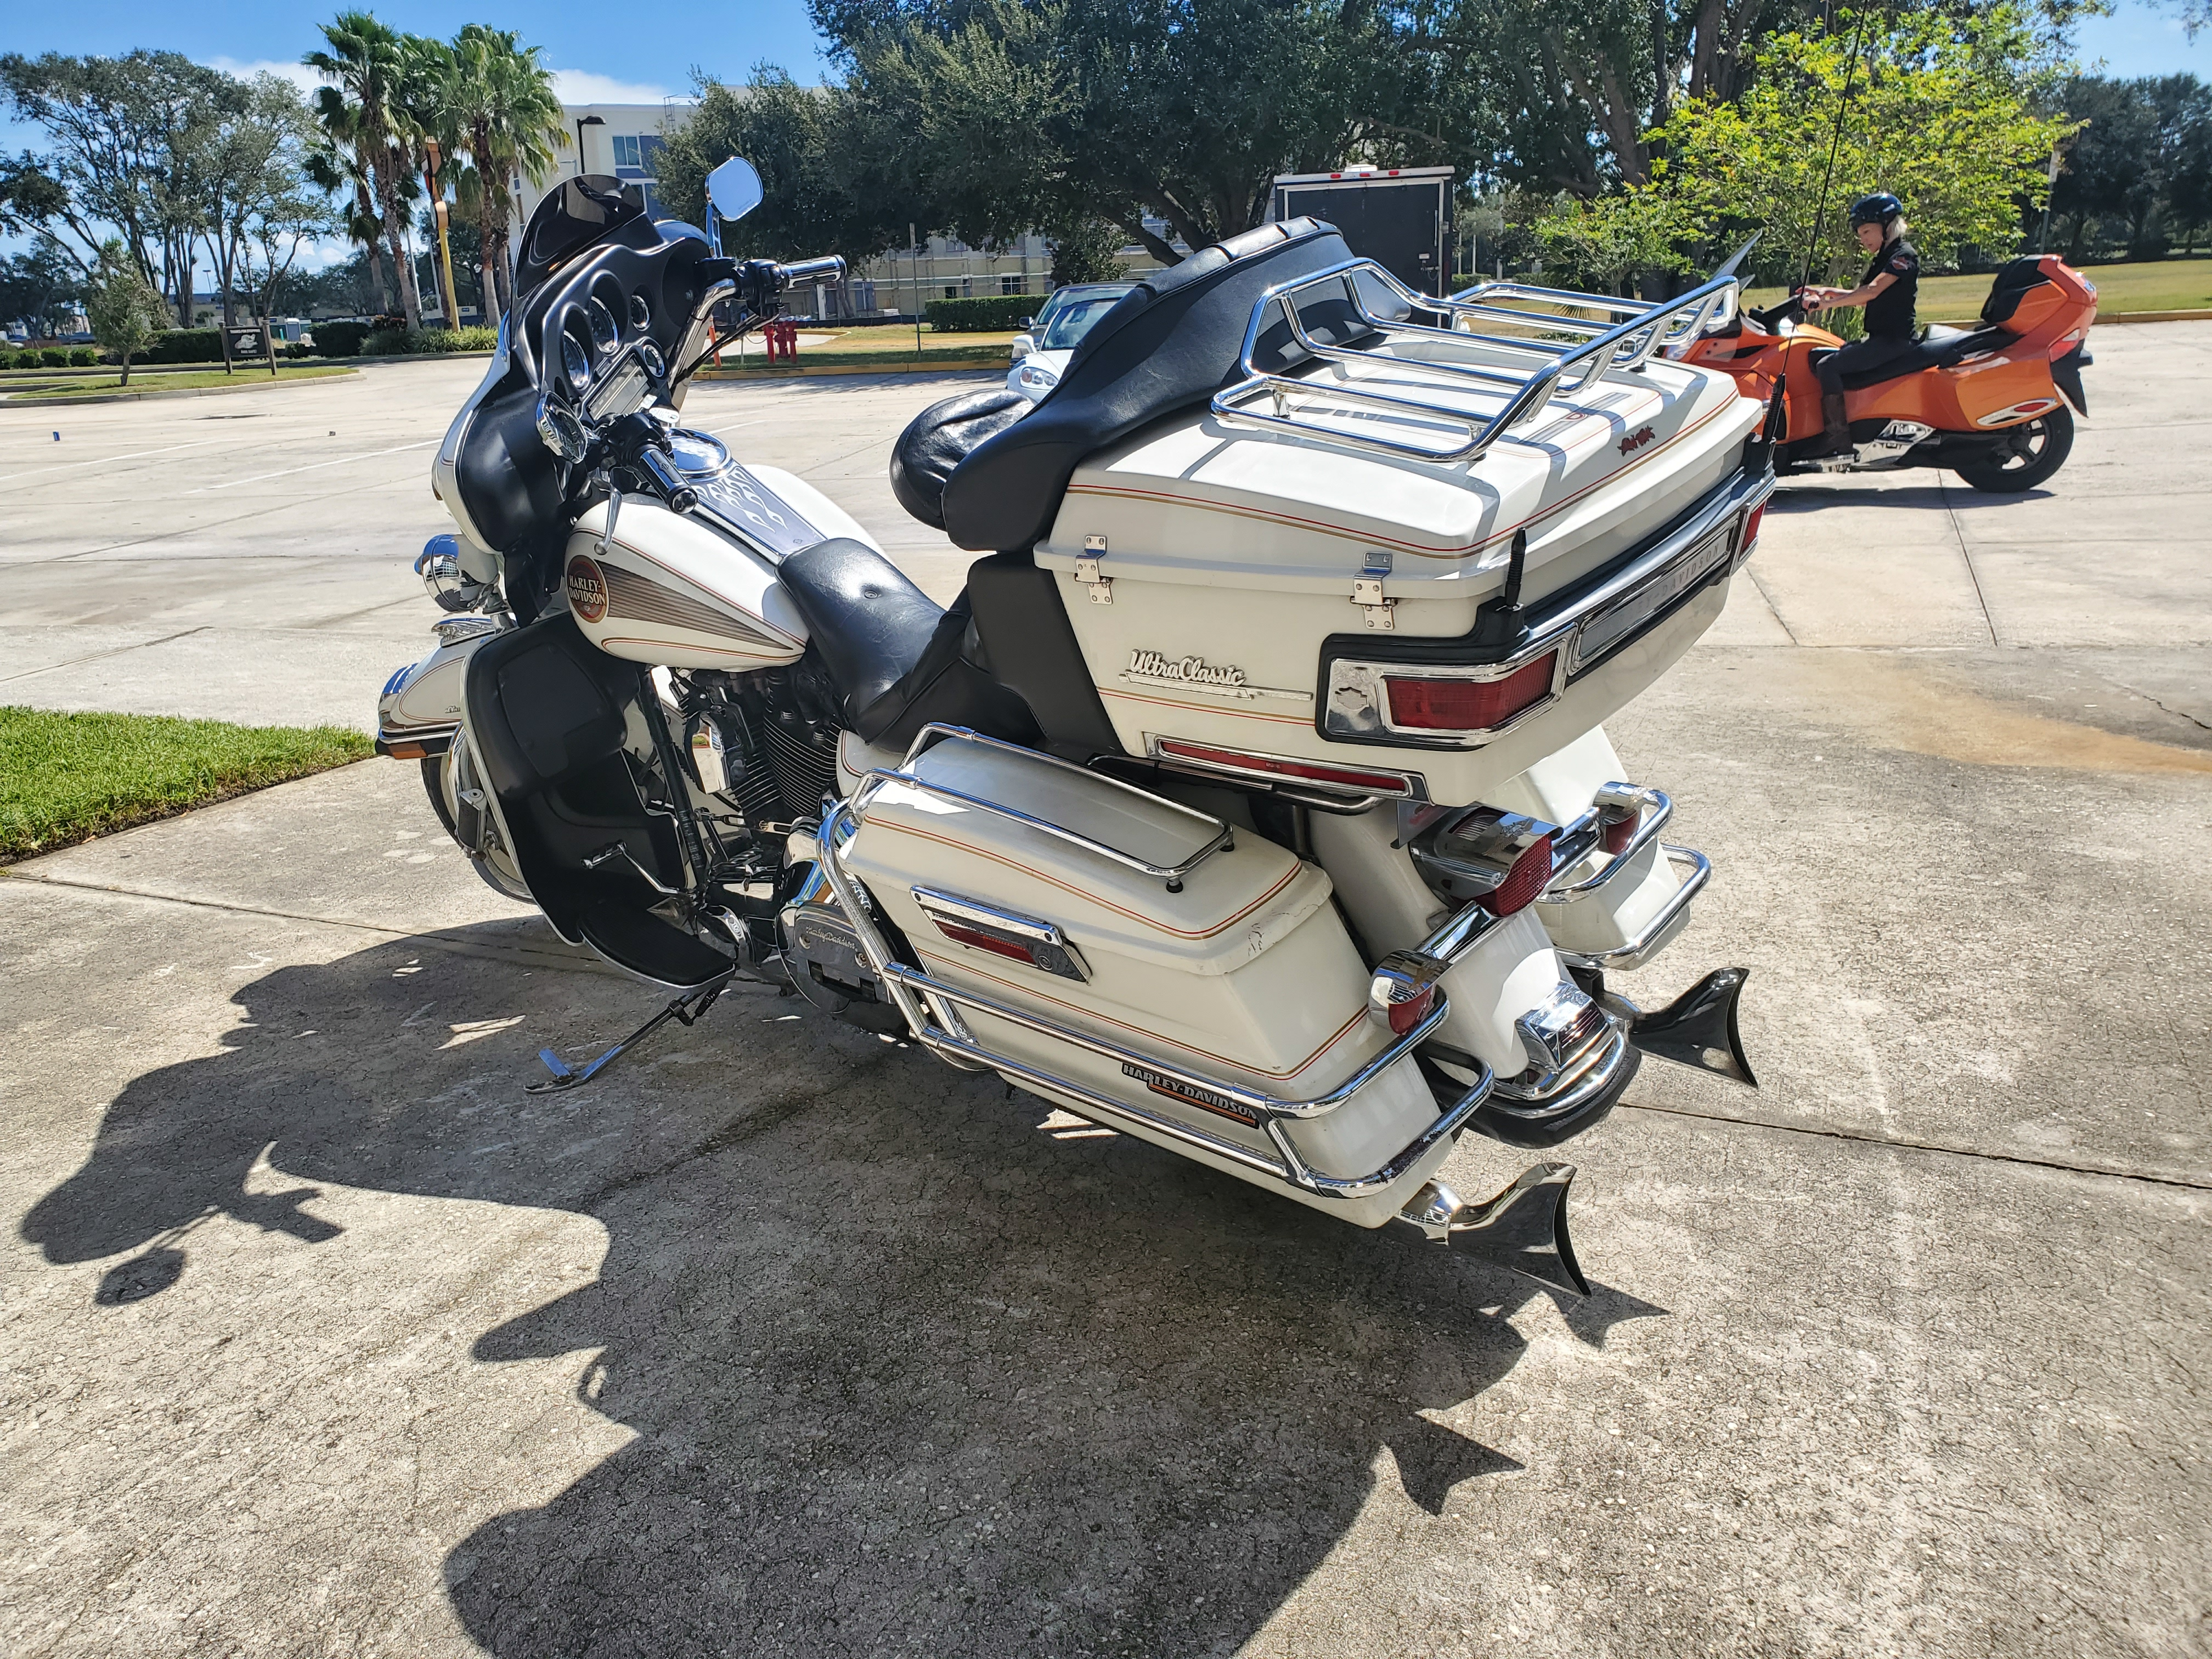 Pre-Owned 1996 Harley-Davidson Electra Glide Ultra Classic Shrine